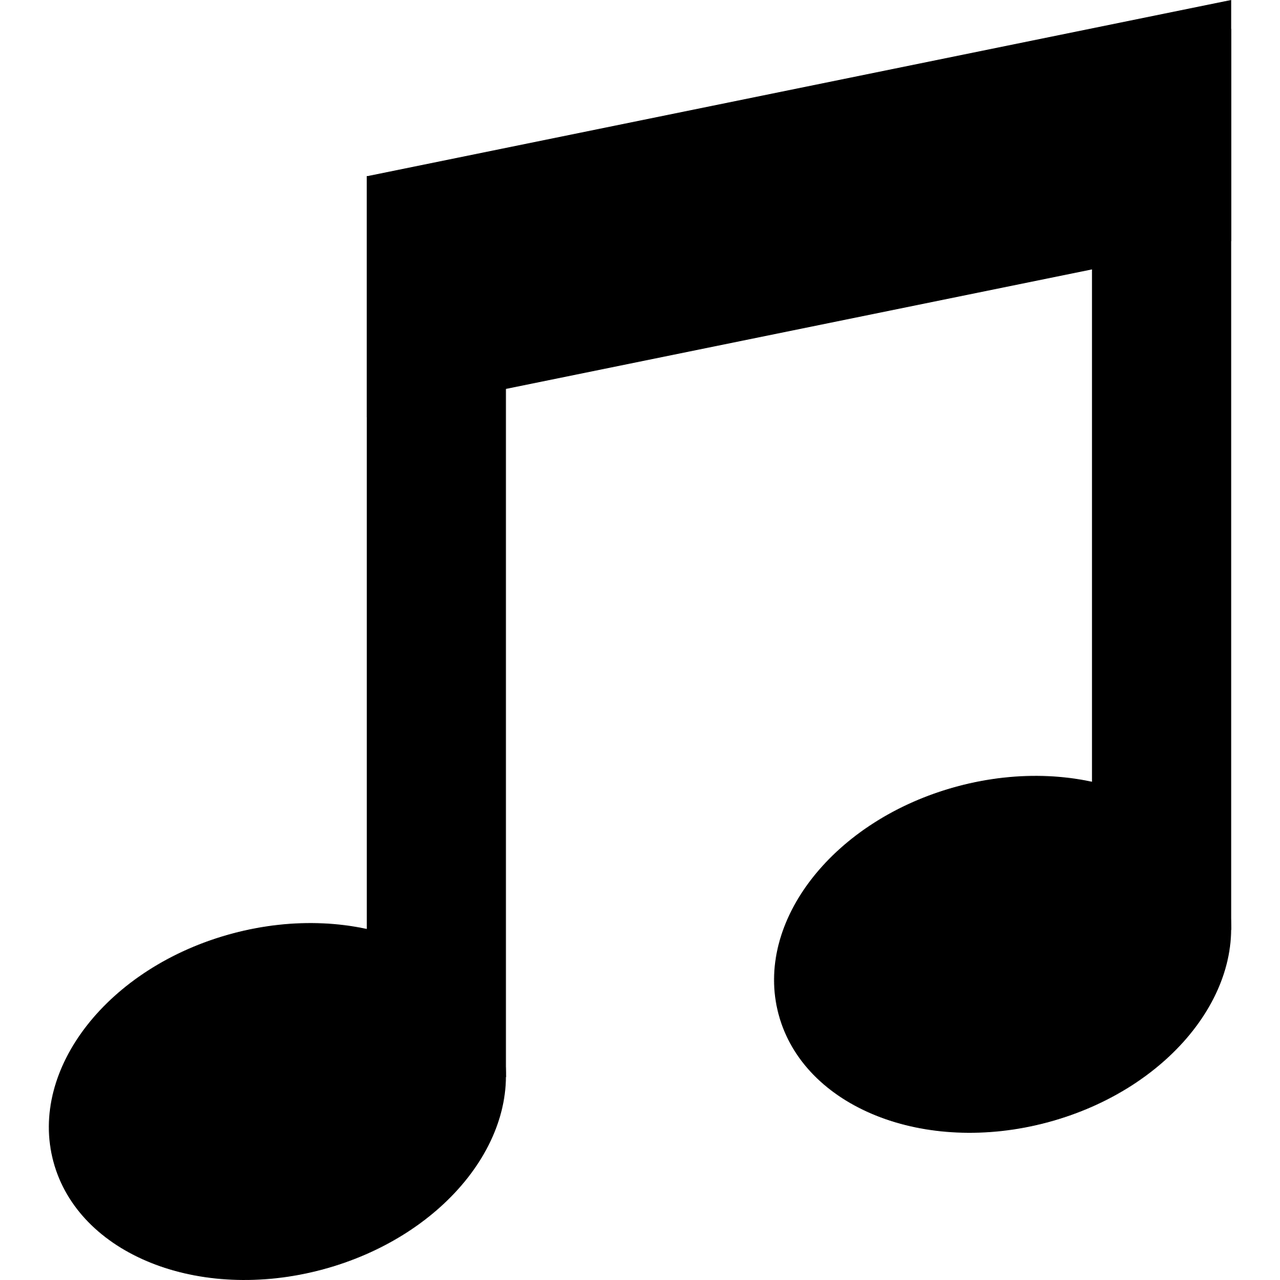 Musical Notes 2 Half Notes Clipart